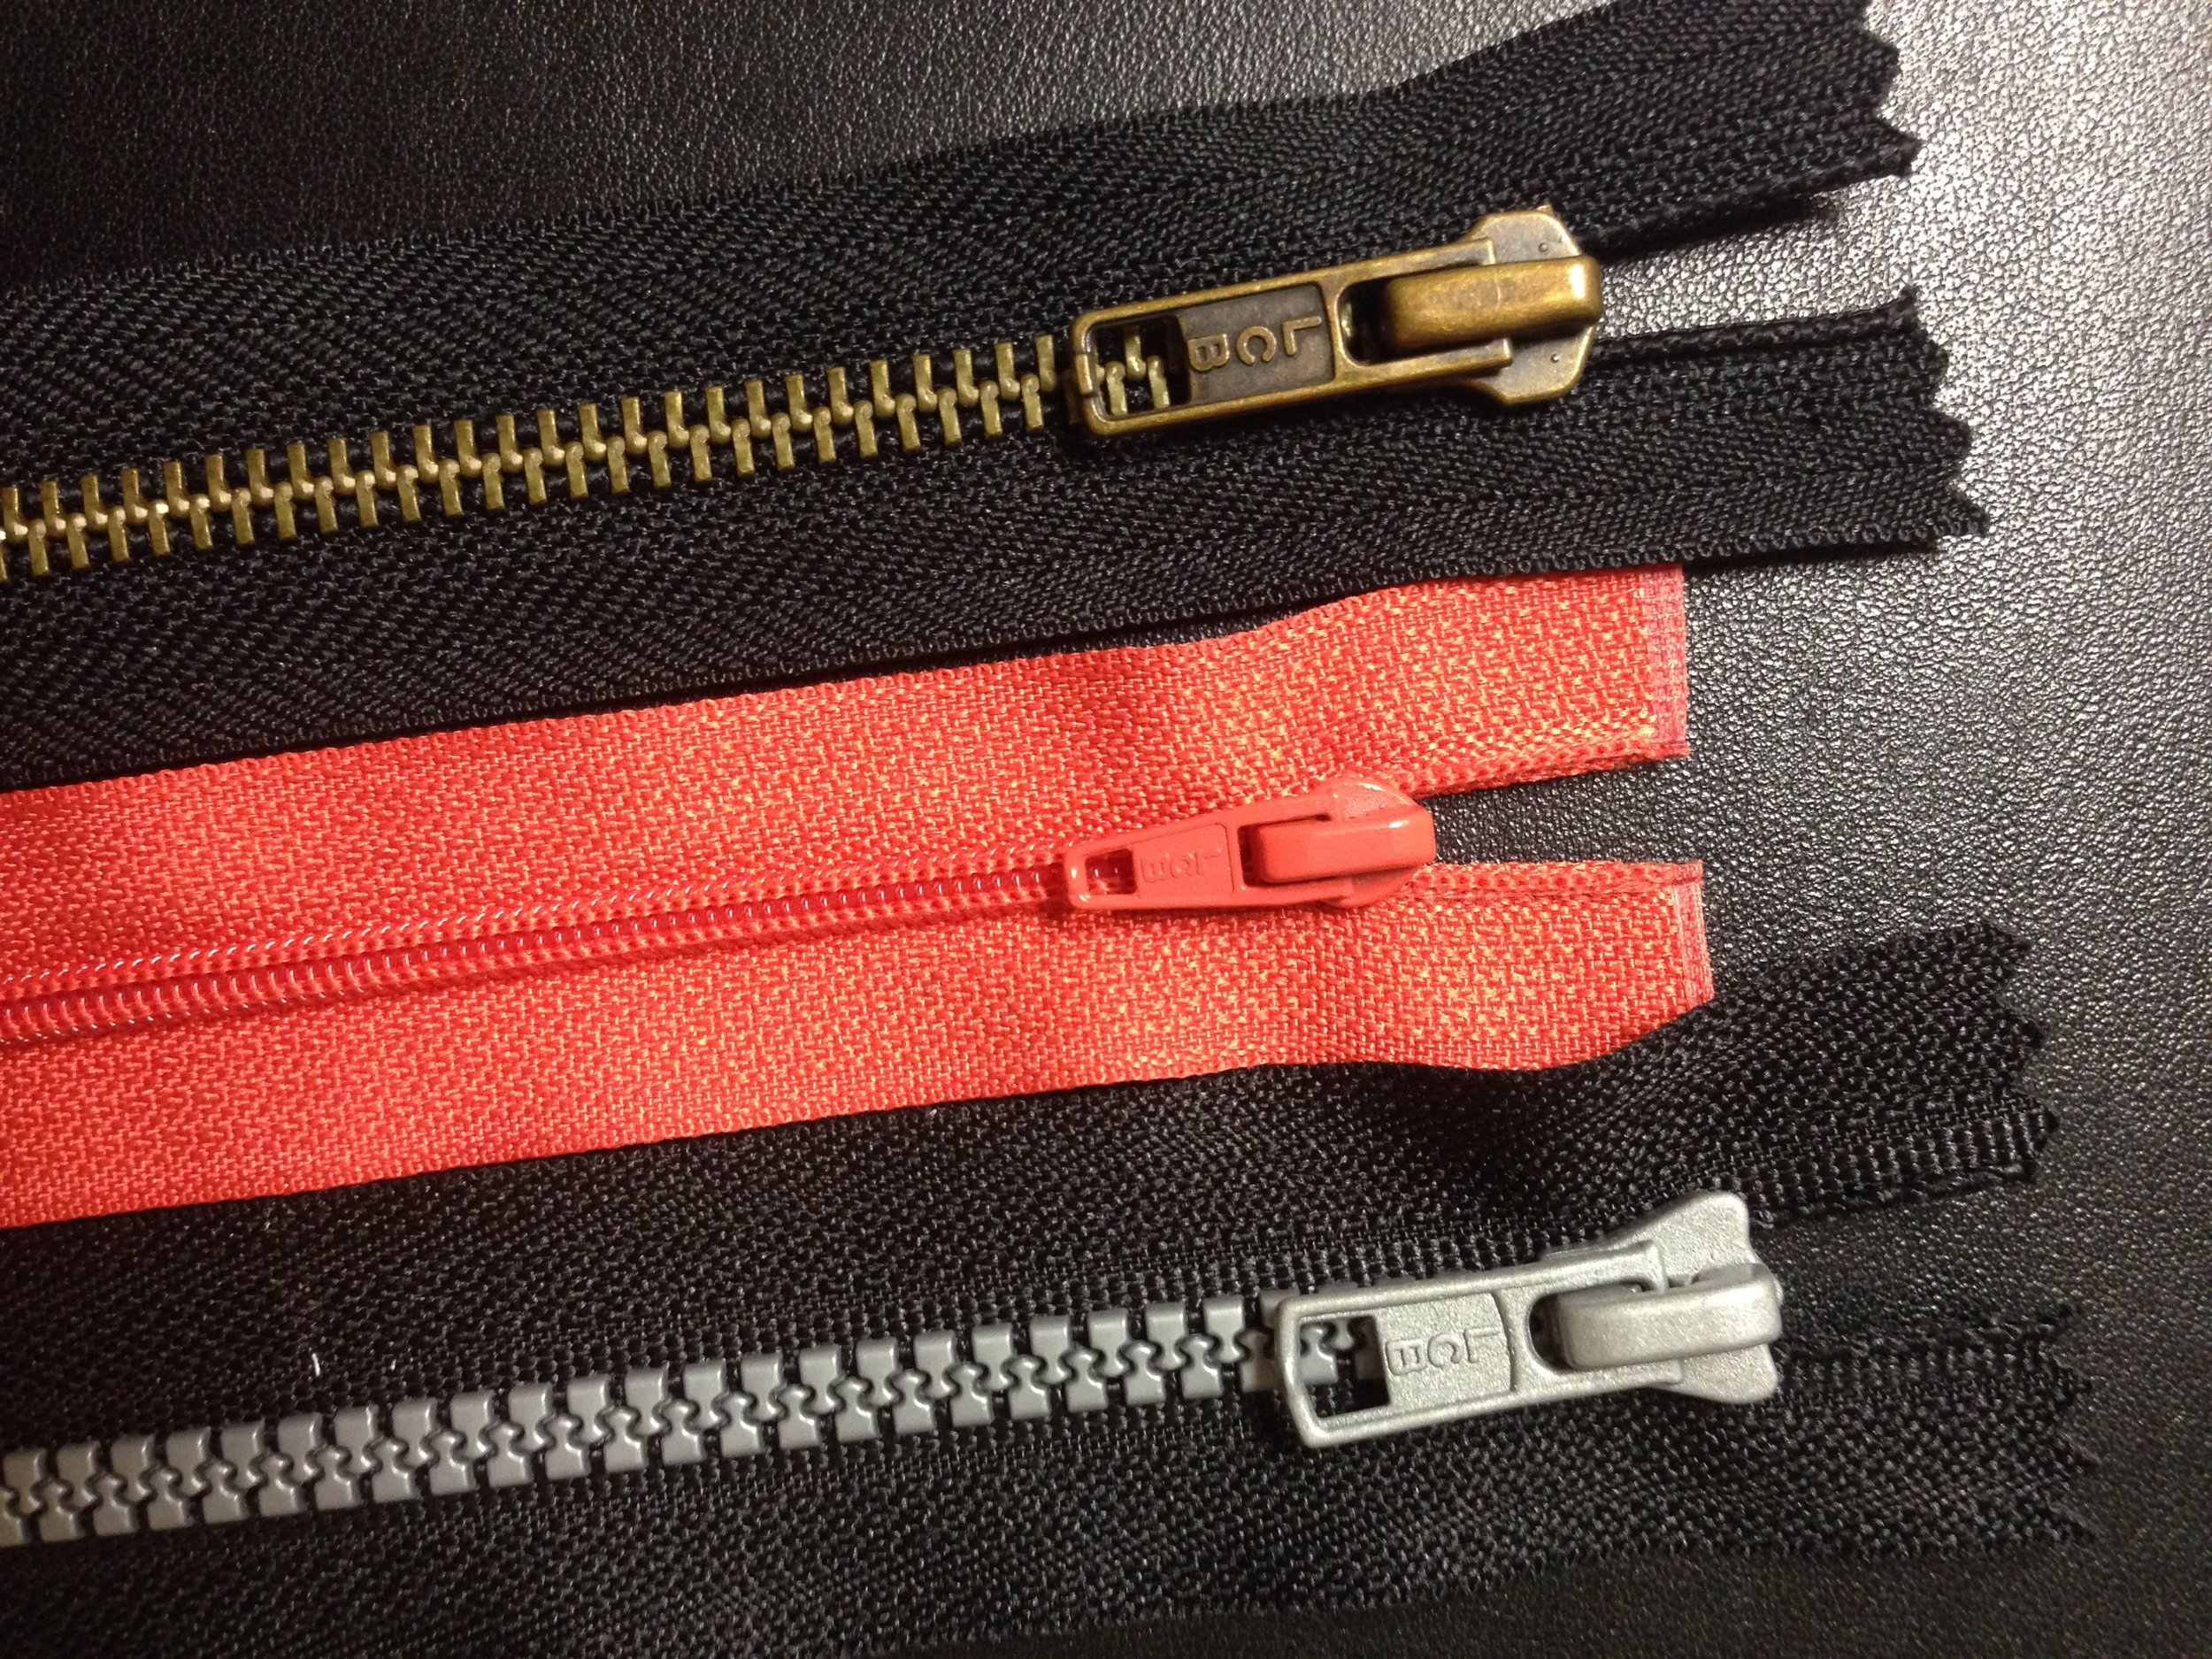 Zippers now have a variety of stylings, including metal teeth (top), coil teeth and plastic teeth.  By Woodbine9 - Own work, CC BY-SA 4.0, https://commons.wikimedia.org/w/index.php?curid=36746452